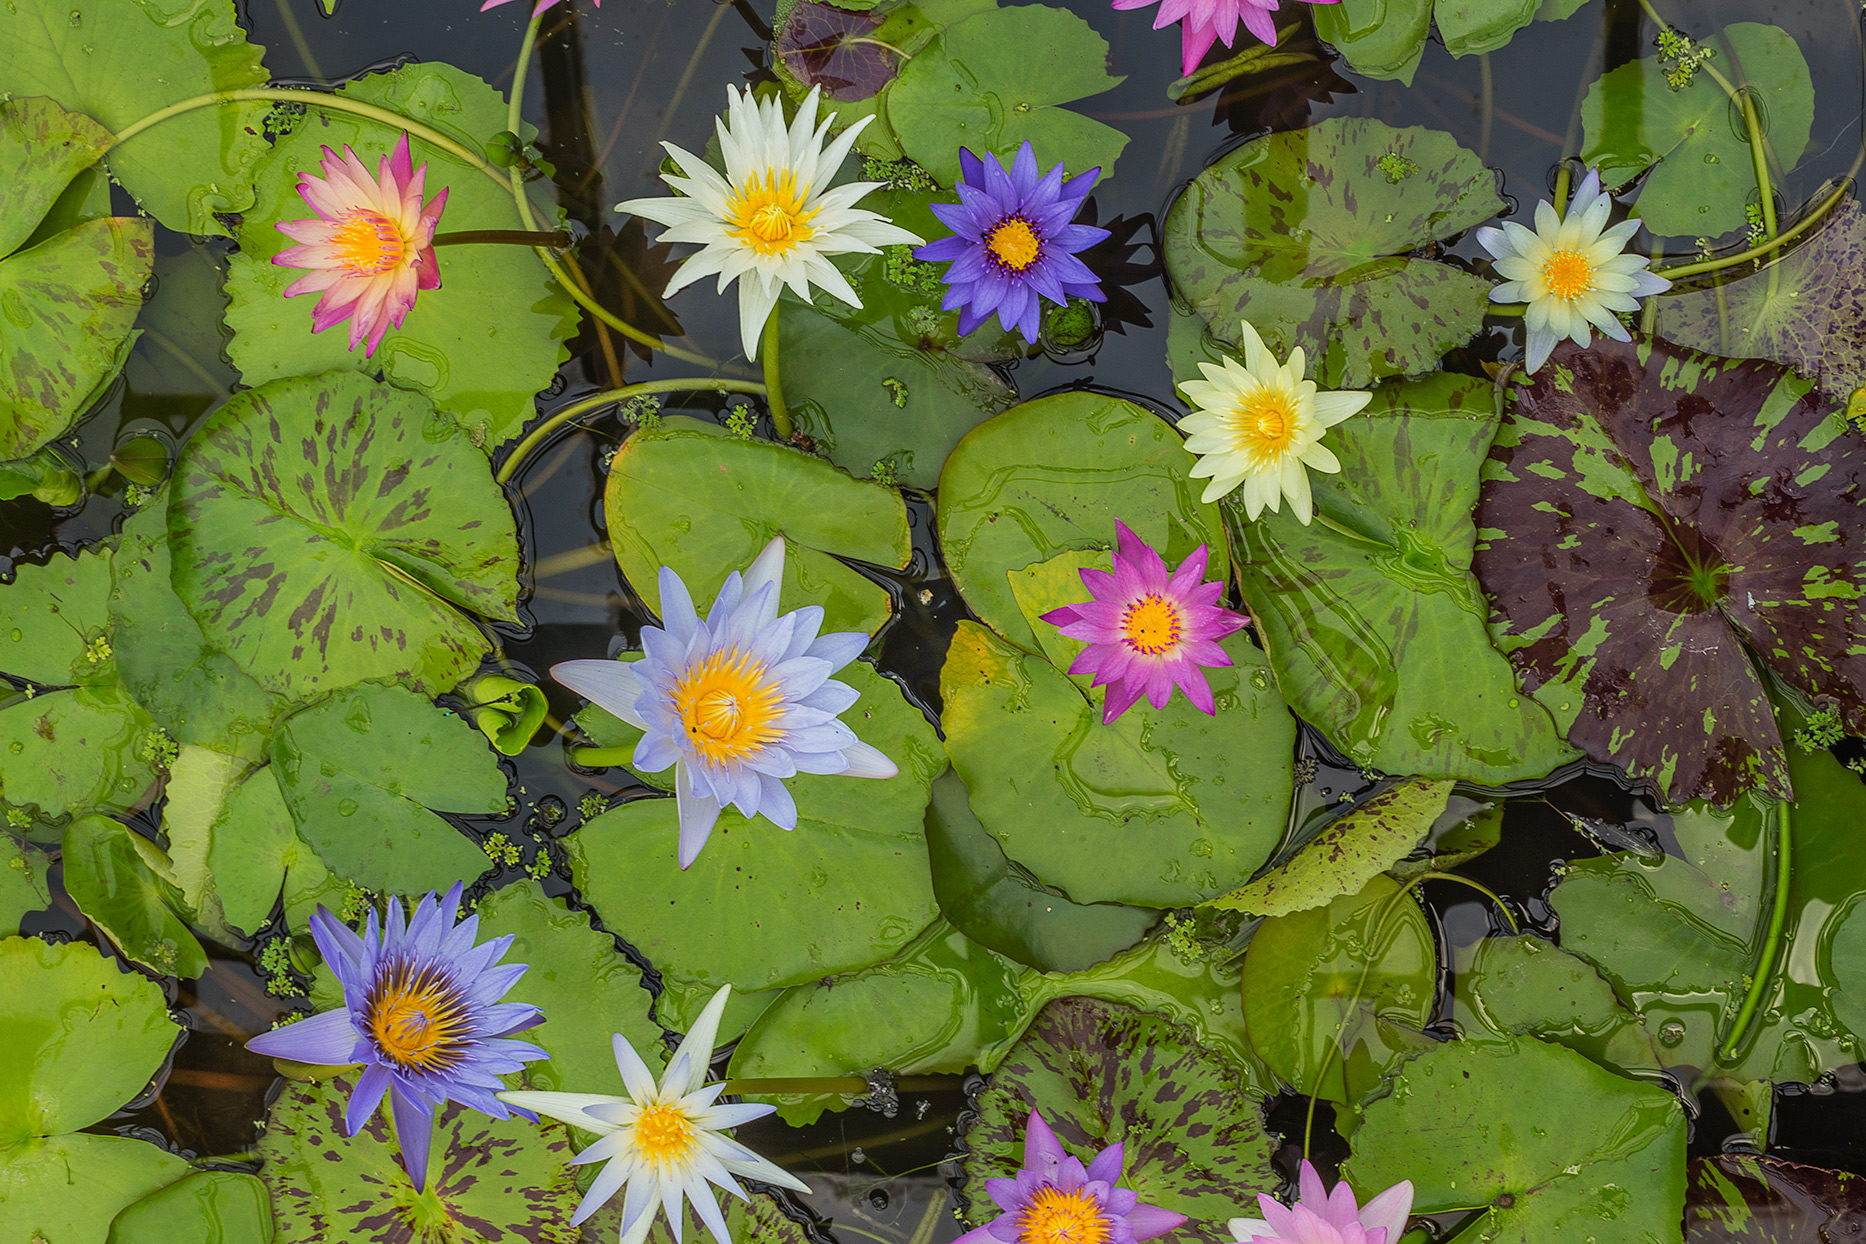 variety of colorful water lilies in pond with lily pads